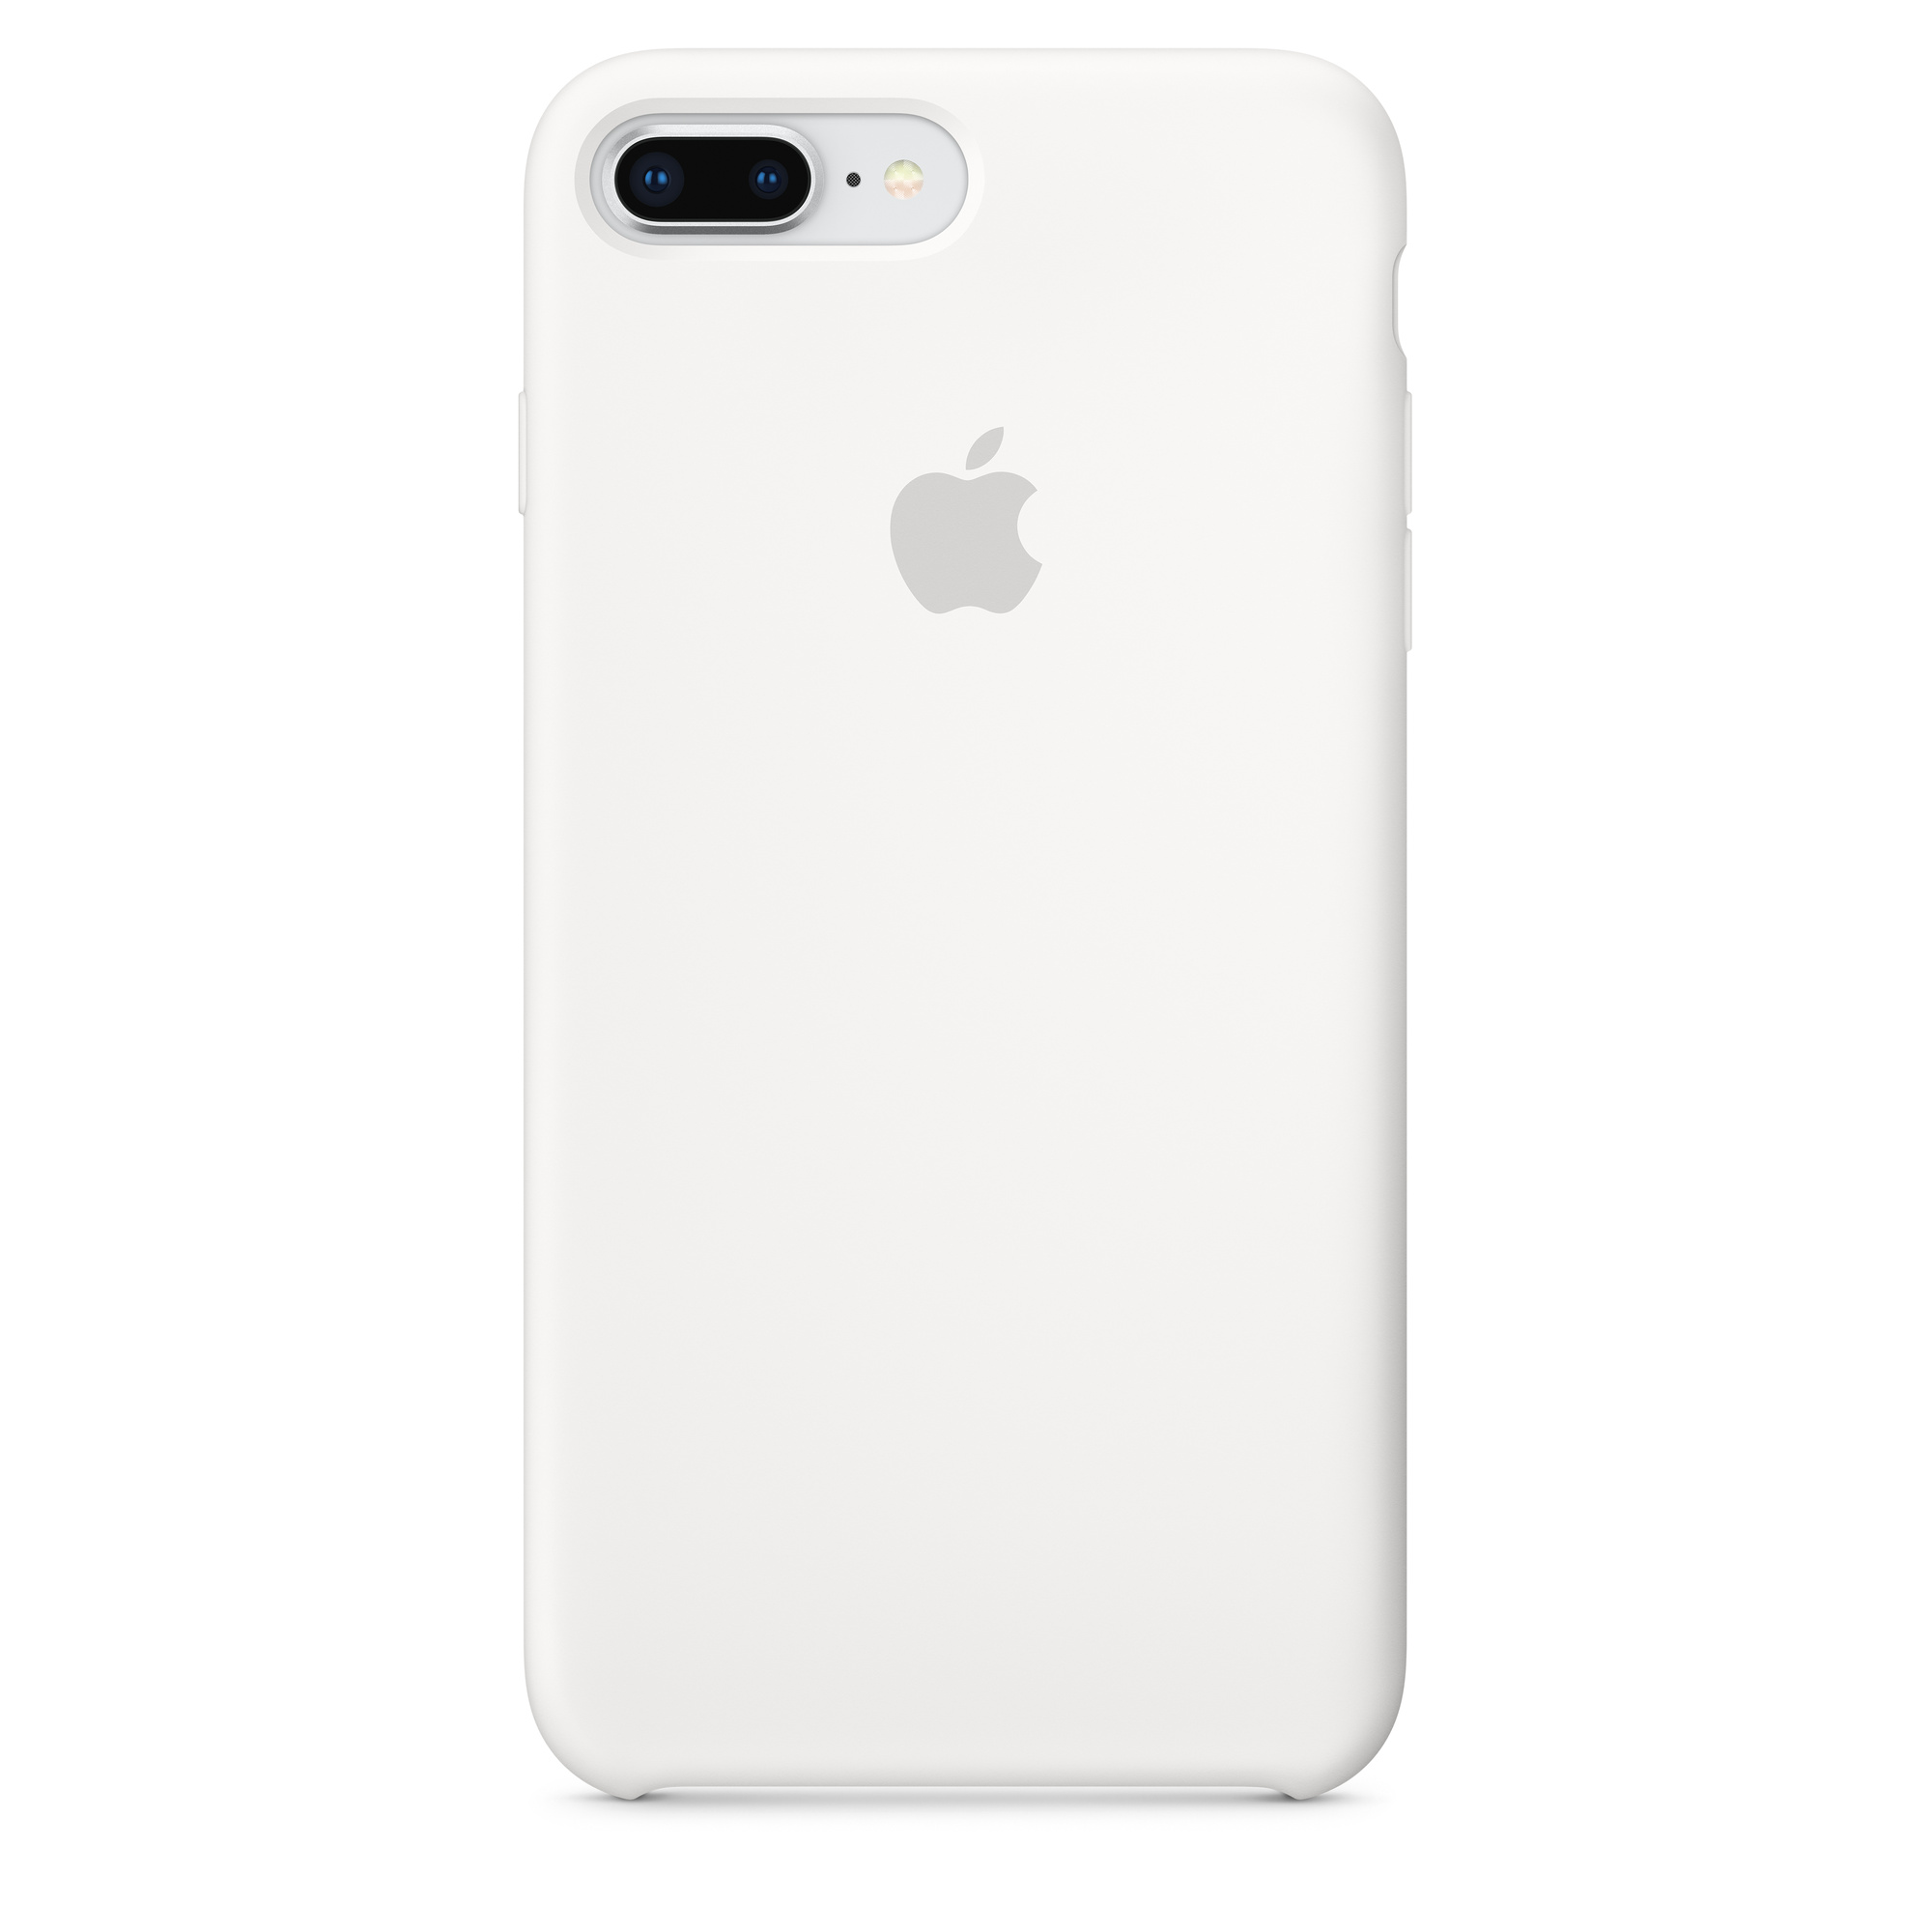 new products 3ef75 30c1b iPhone 8 Plus / 7 Plus Silicone Case - White